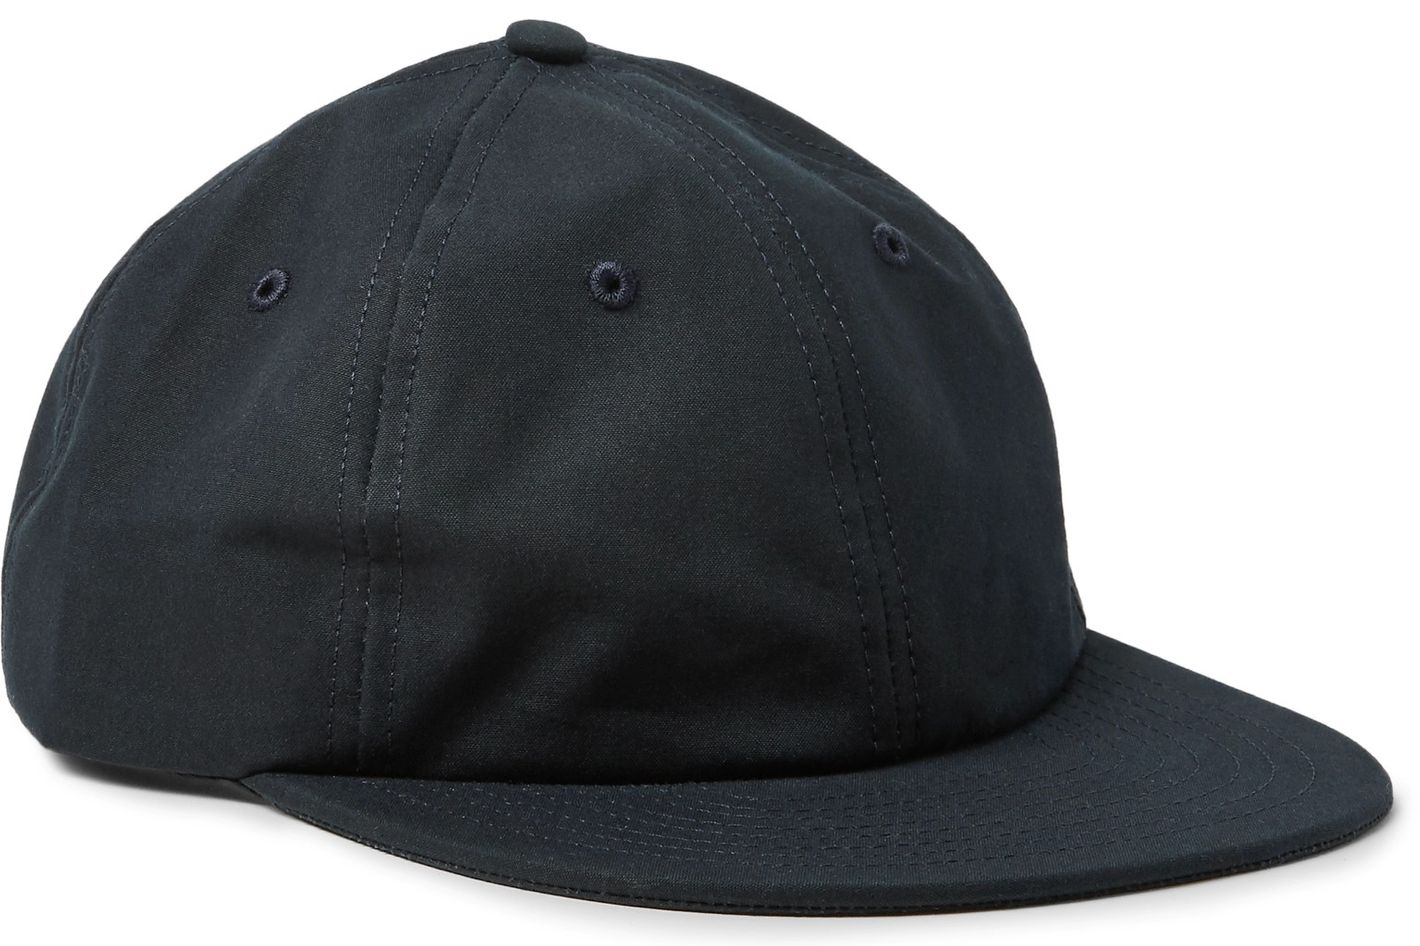 Best Made Company Water-Resistant Cotton Ventile Baseball Cap